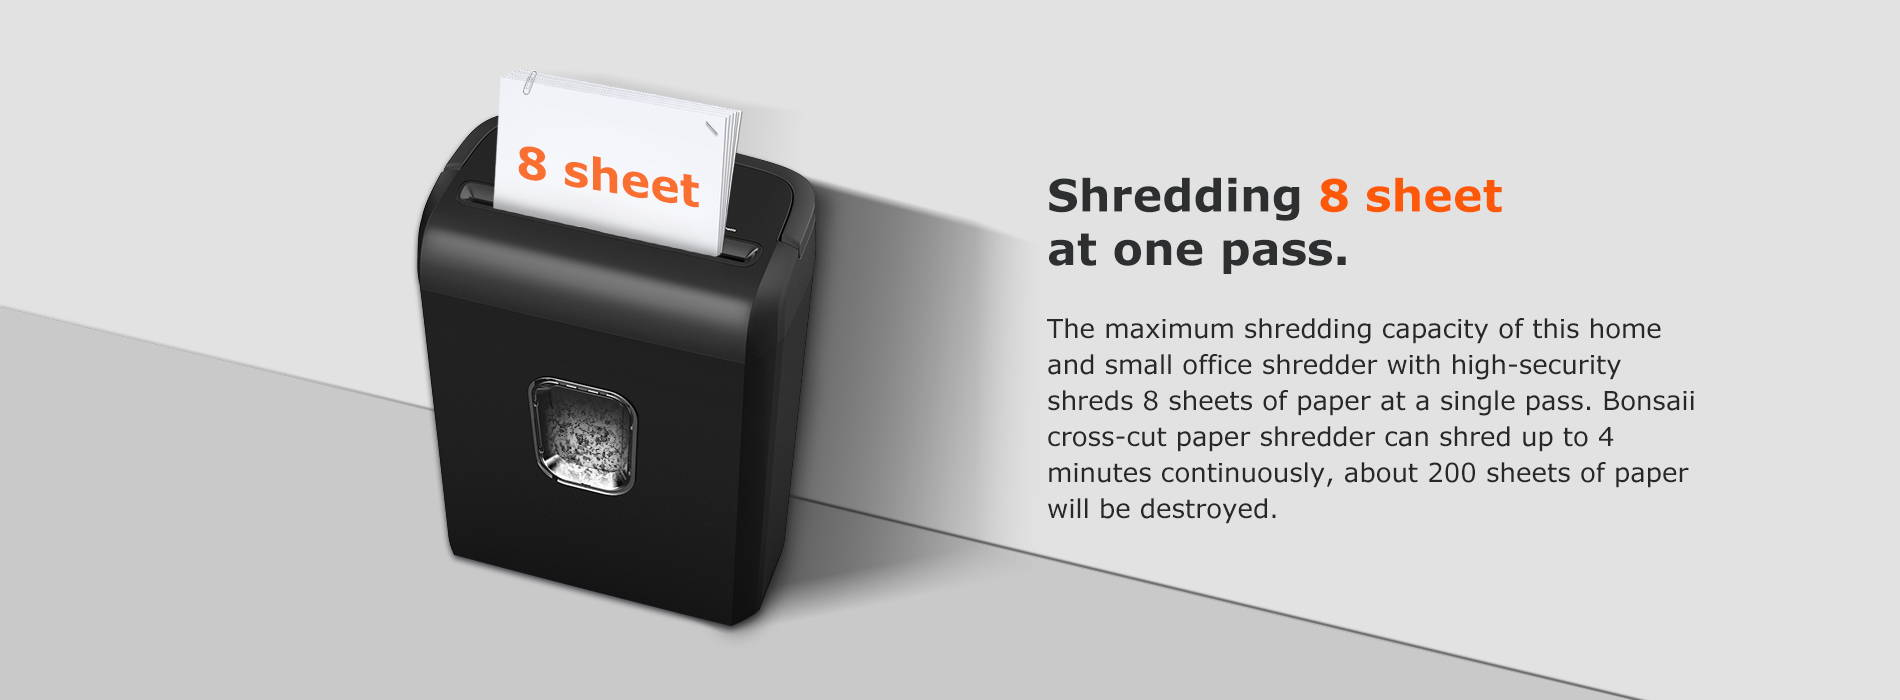 Shredding 8 sheet at one pass The maximum shredding capacity of this home and small office shredder with high-security shreds 8 sheets of paper at a single pass. Bonsaii cross-cut paper shredder can shred up to 4 minutes continuously, about 200 sheets of paper will be destroyed.